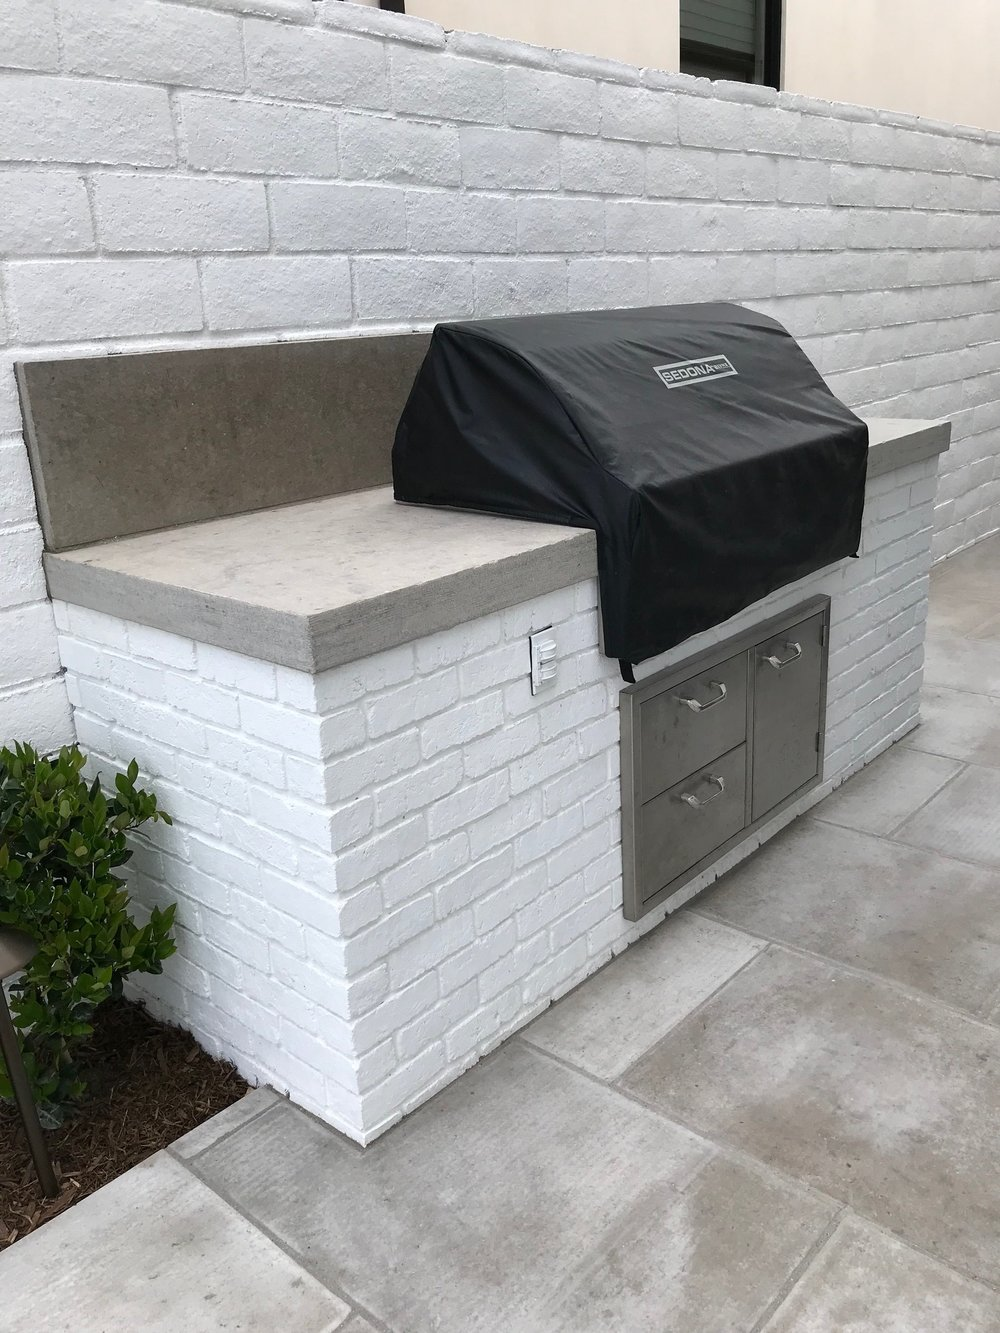 Outdoor masonry kitchen in Dana Point, California, United States